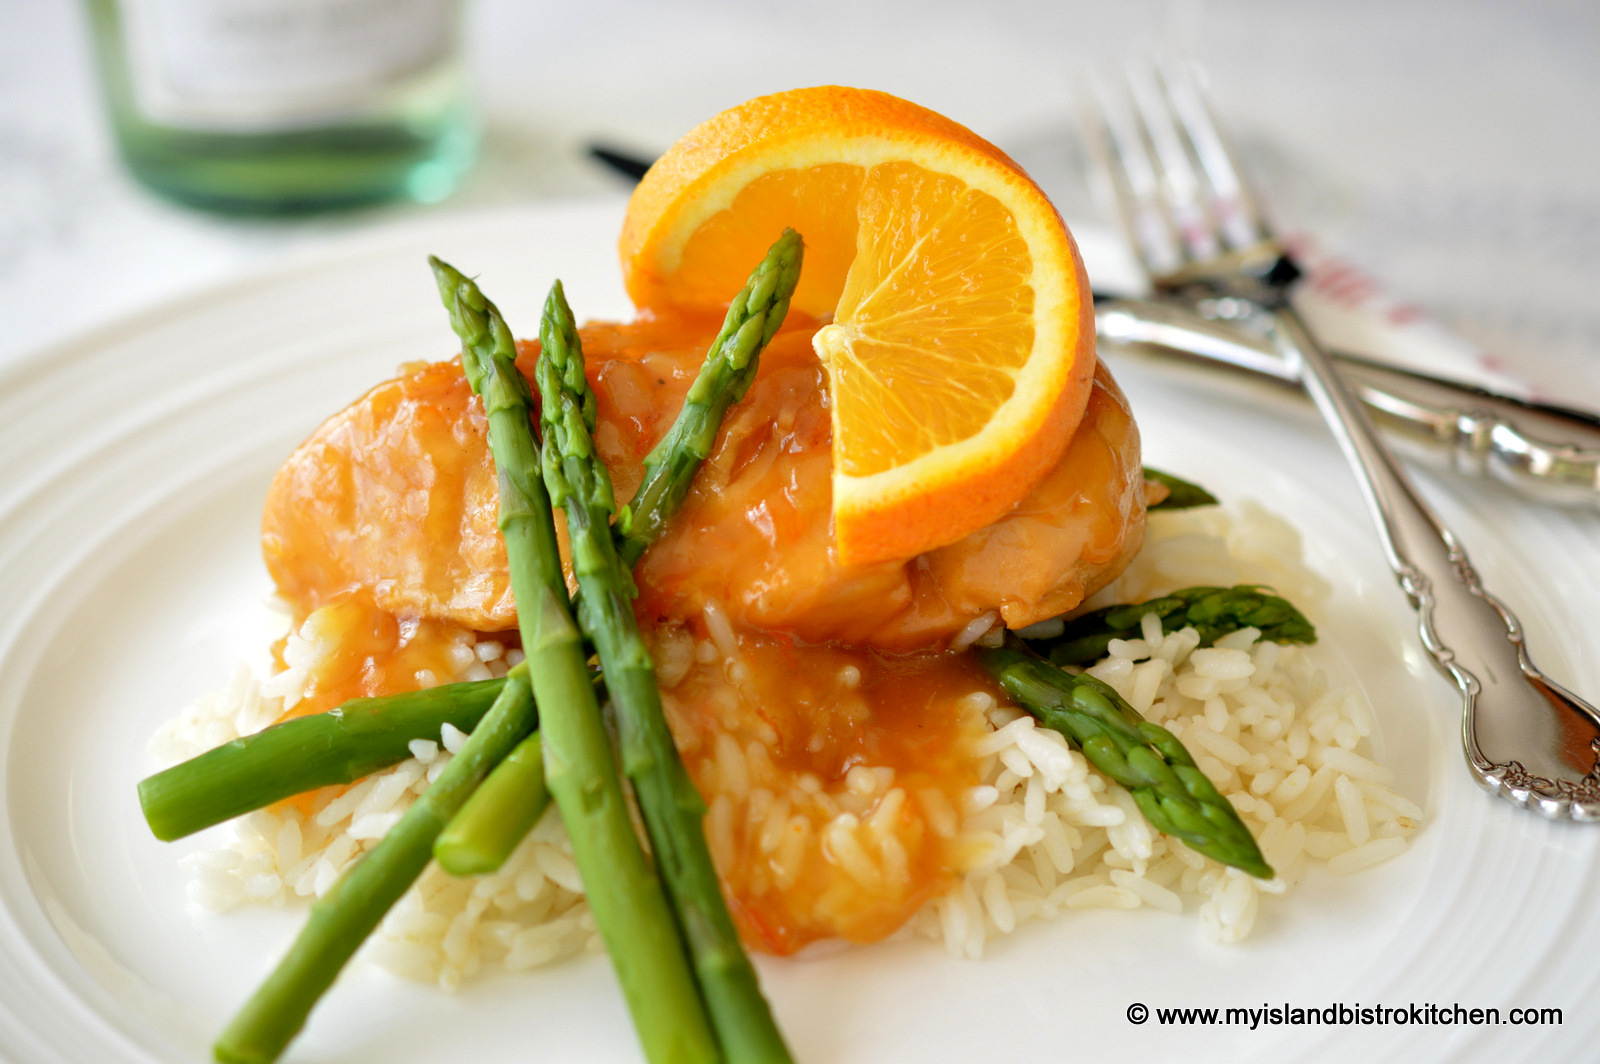 Maple-Orange Sauced Chicken Breast on top of a bed of white rice served with green asparagus and an orange wheel